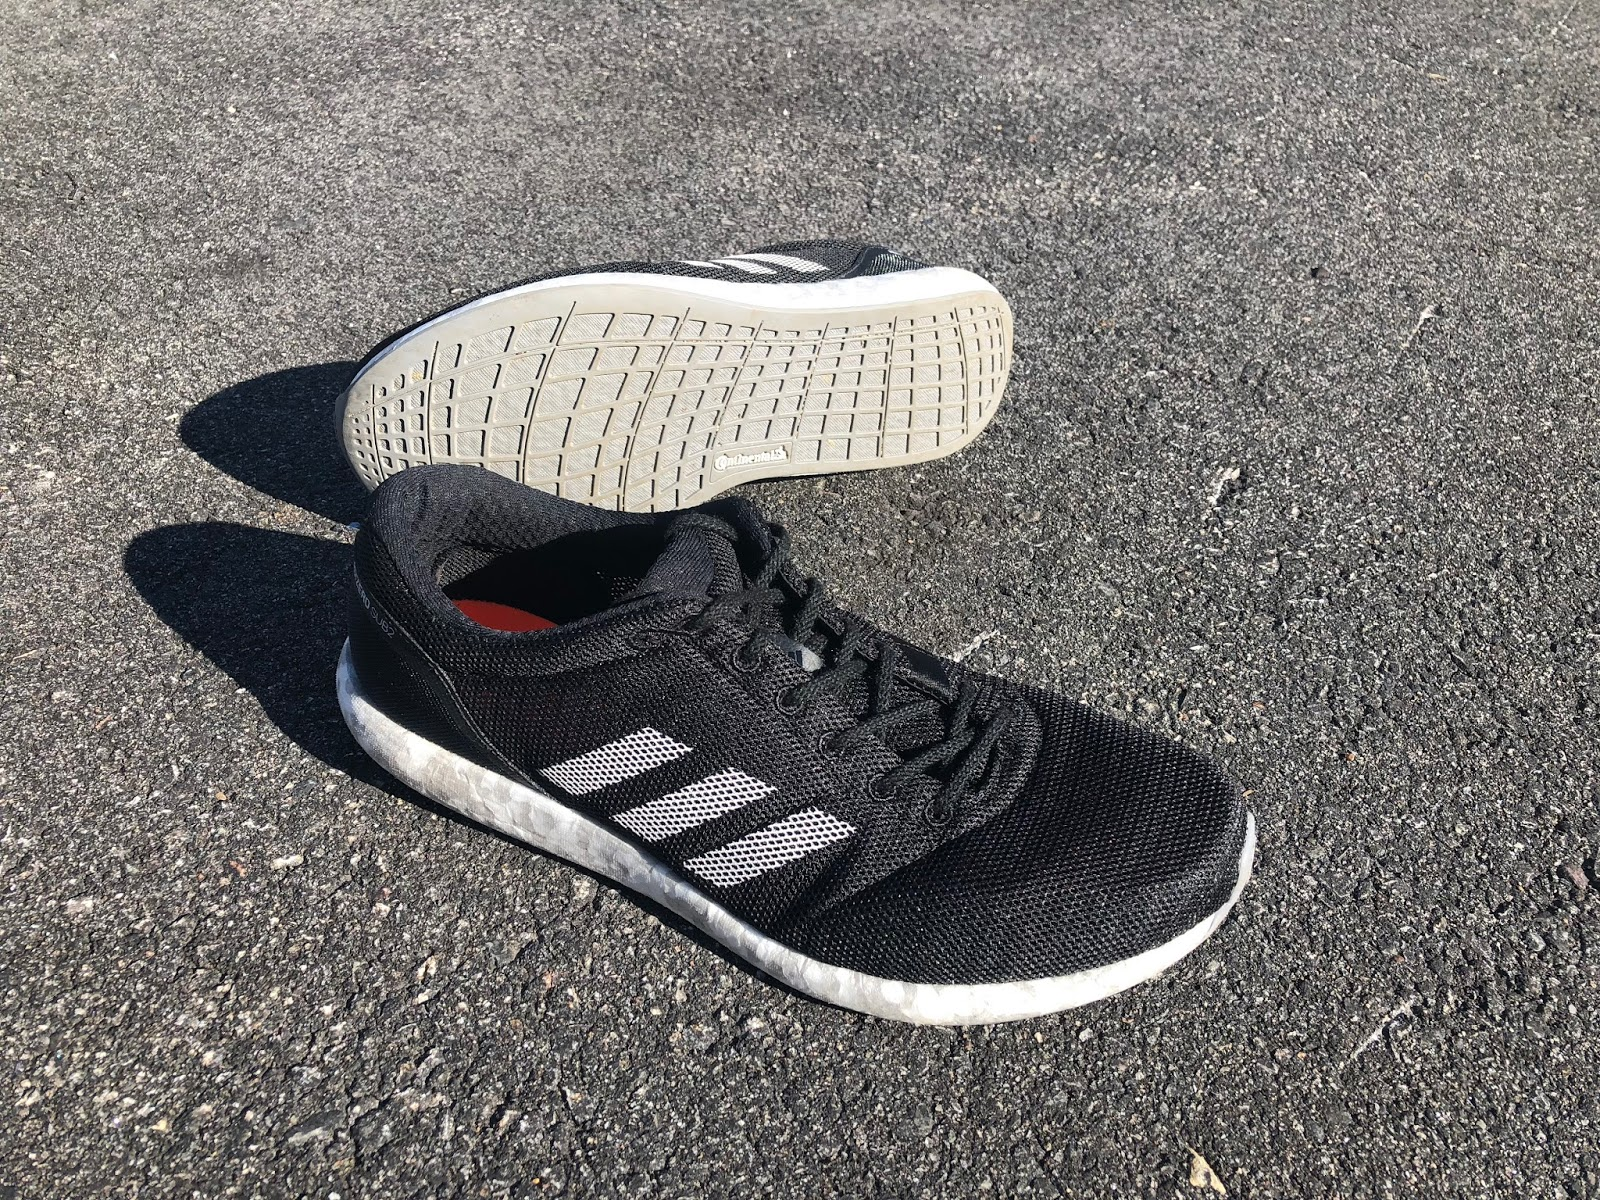 purchase cheap 622bf e58a8 In Depth Adidas Adizero Sub2 Multi Tester Review  Highly Engineered yet  Simple, Sleek, Light and Elegant State of the Art